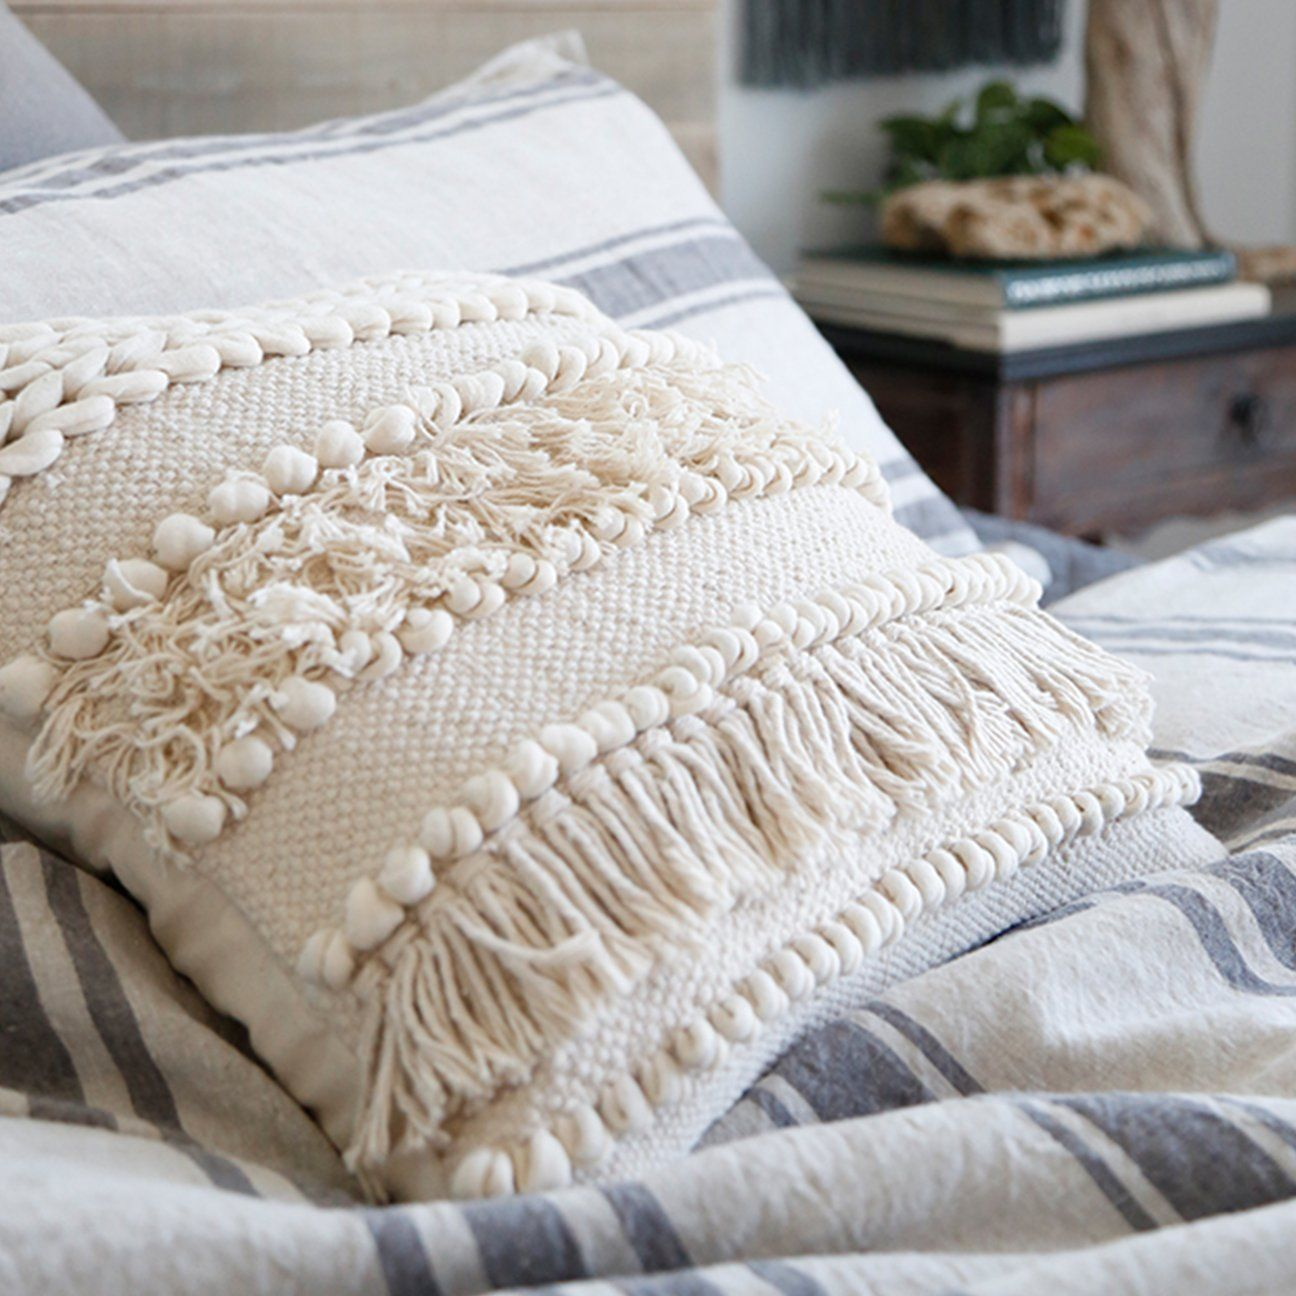 Hand-loomed tassels, braids, and pom poms this square pillow brings an earthy and textured feel to your home. 100% CottonHandmadeInserts Included